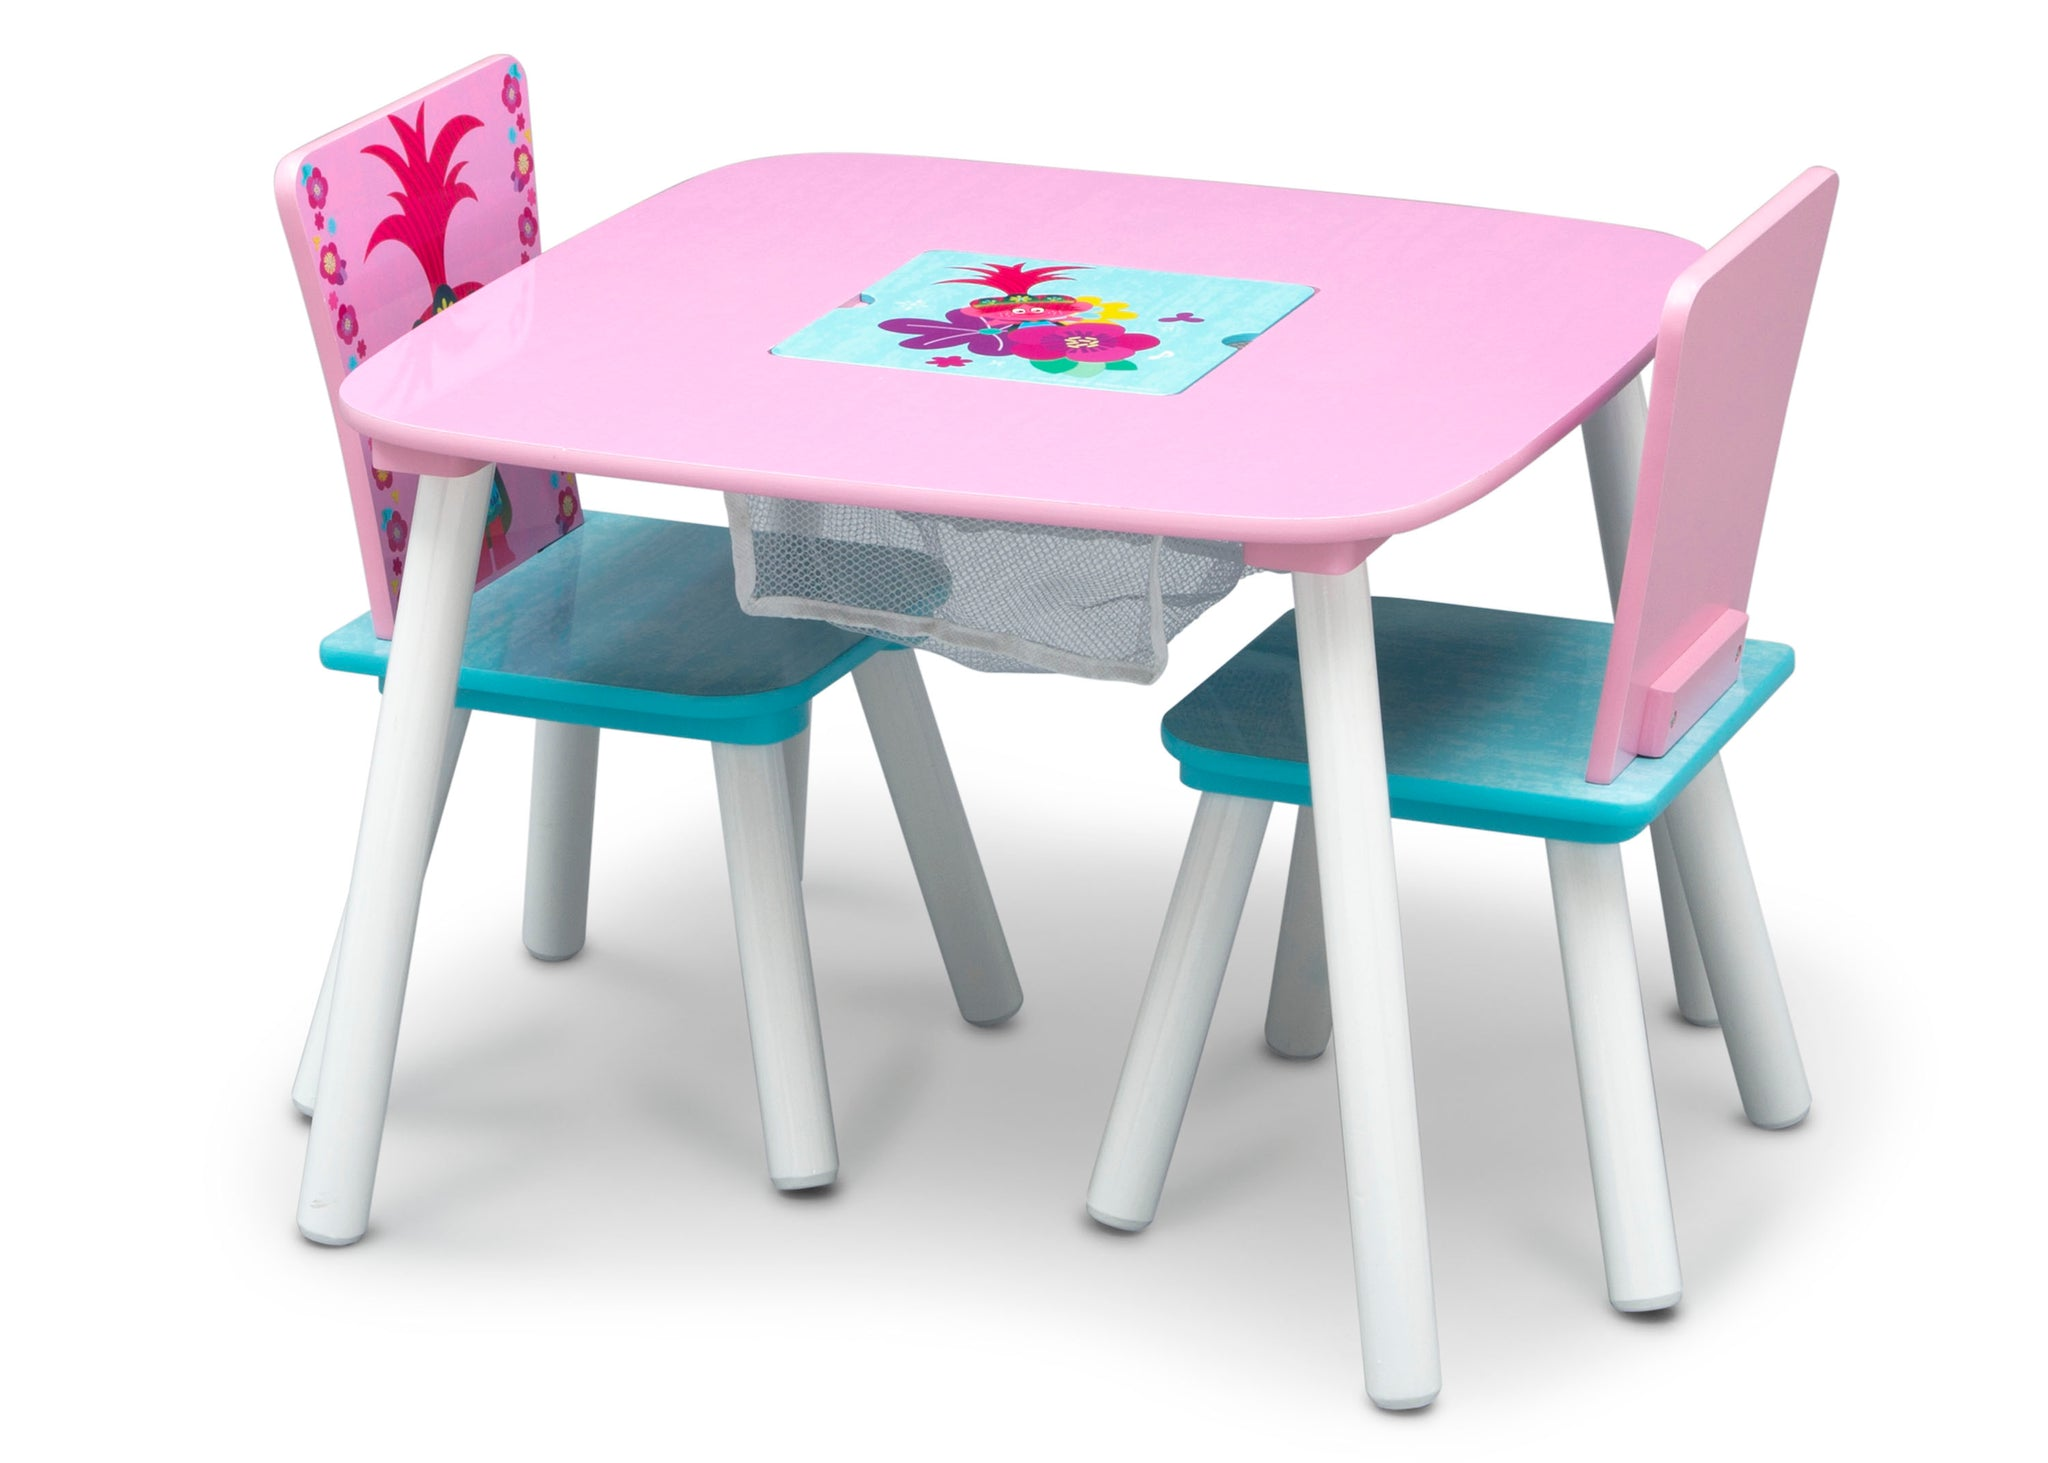 Delta Children Trolls World Tour (1177) Table and Chair Set with Storage, Left Silo View with Chairs In